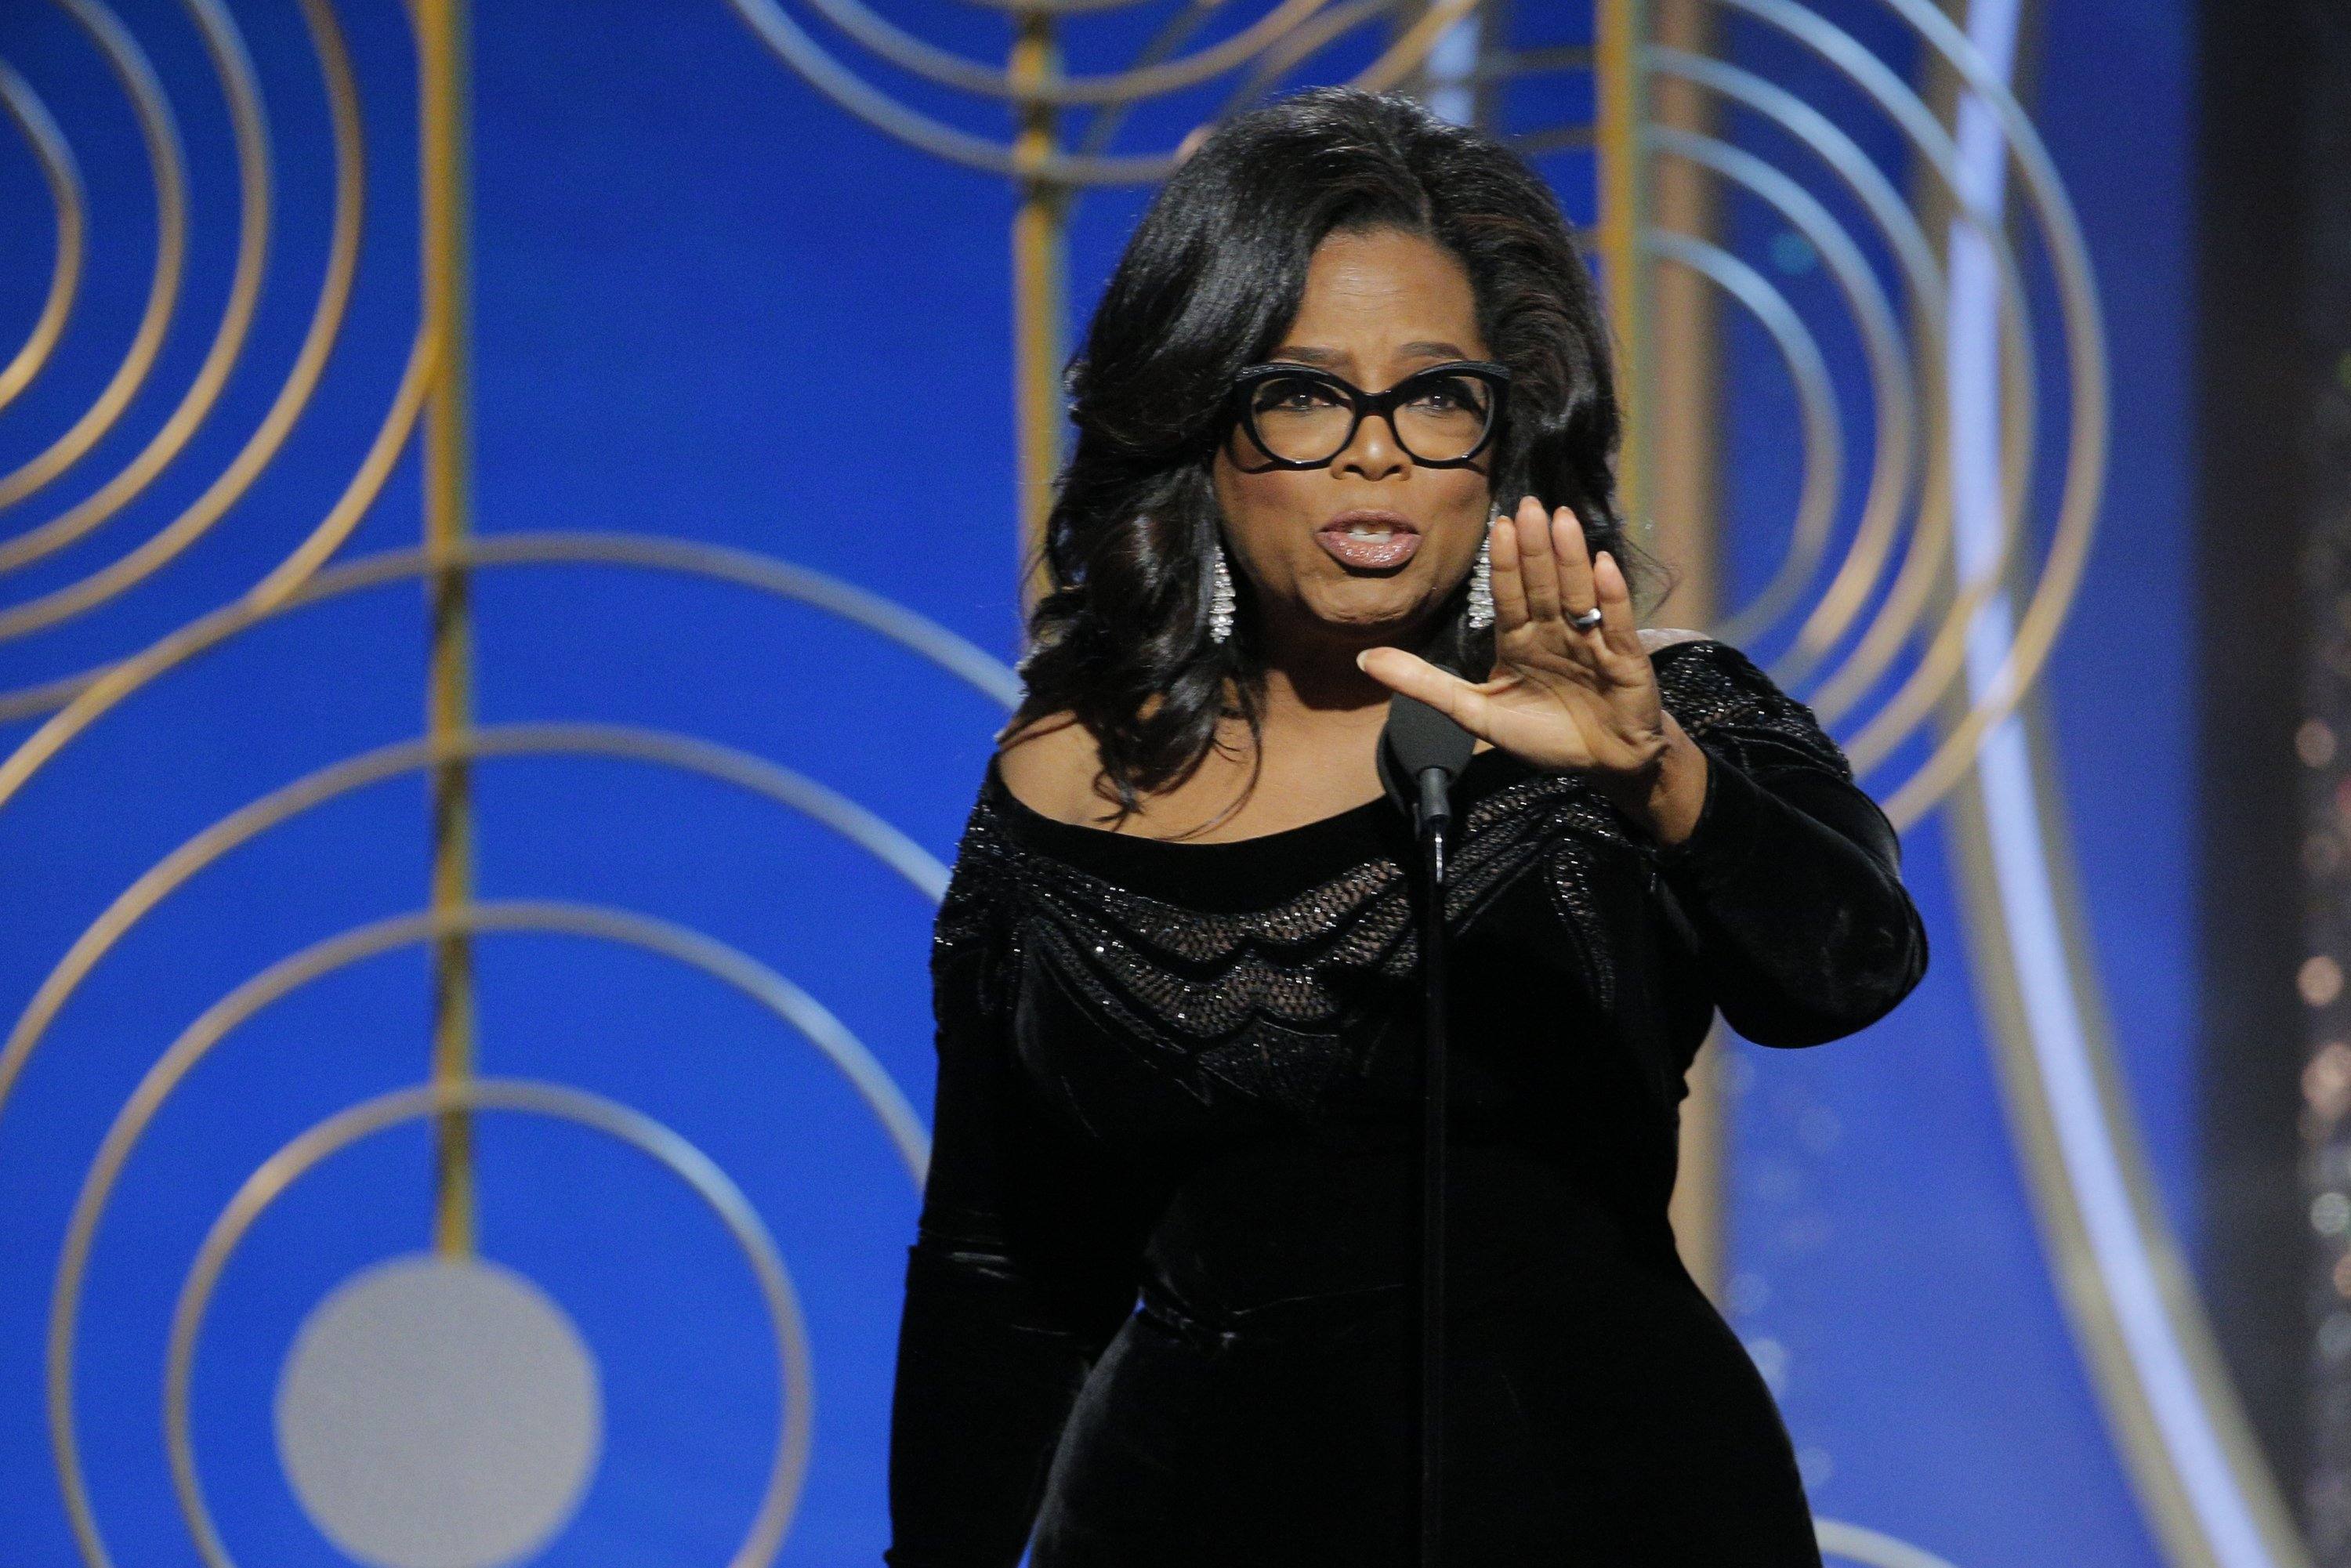 Oprah Winfrey accepting her 2018 Cecil B. DeMille Award during the 75th Golden Globe Awards. | Photo: Getty Images